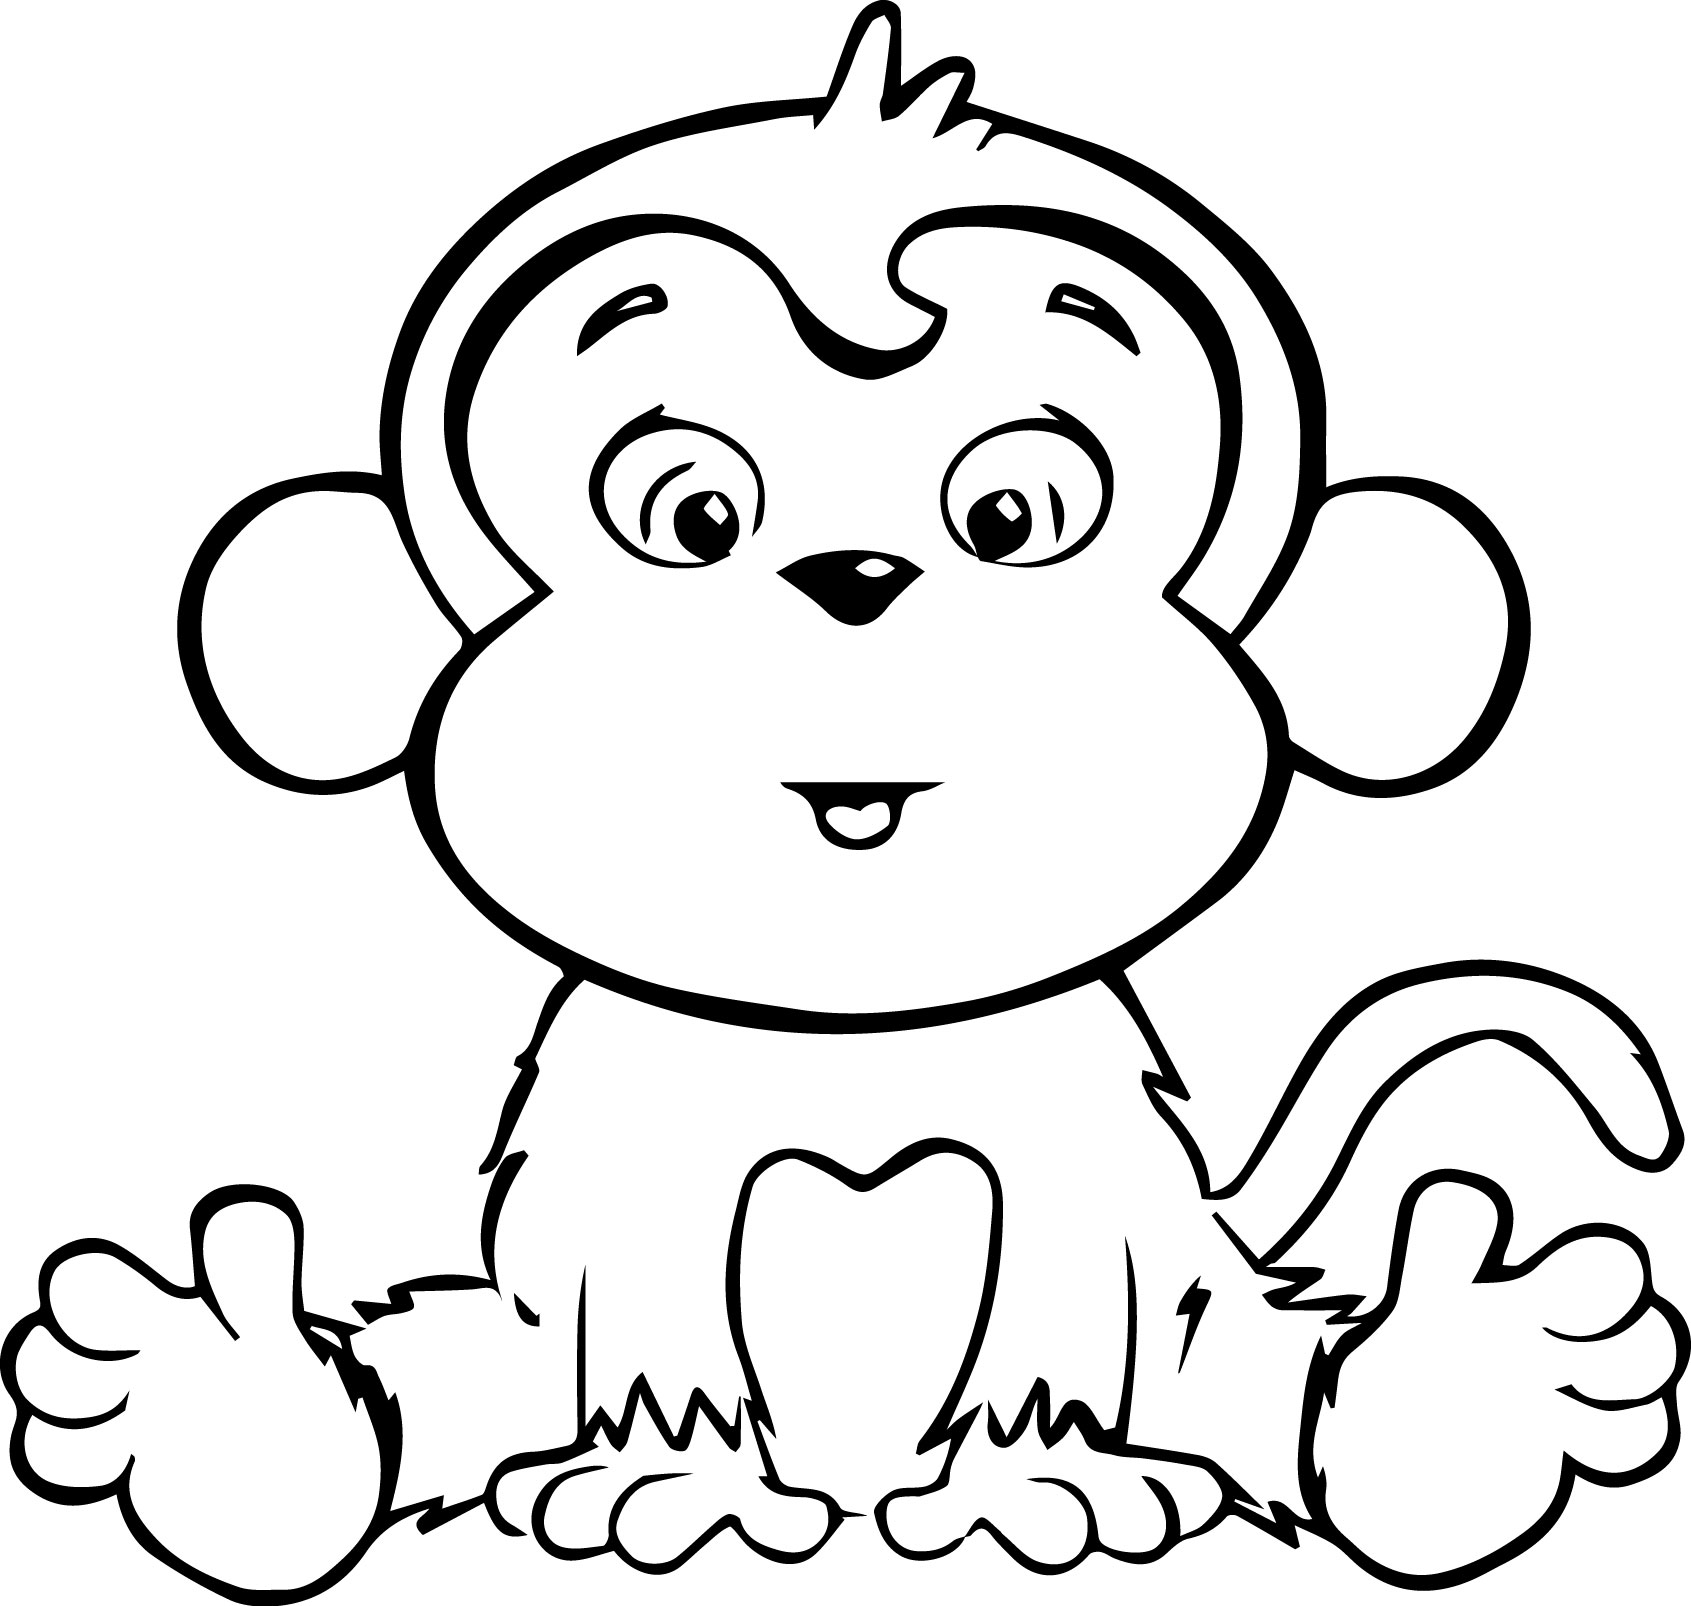 monkey coloring page - colouring monkey clipart best